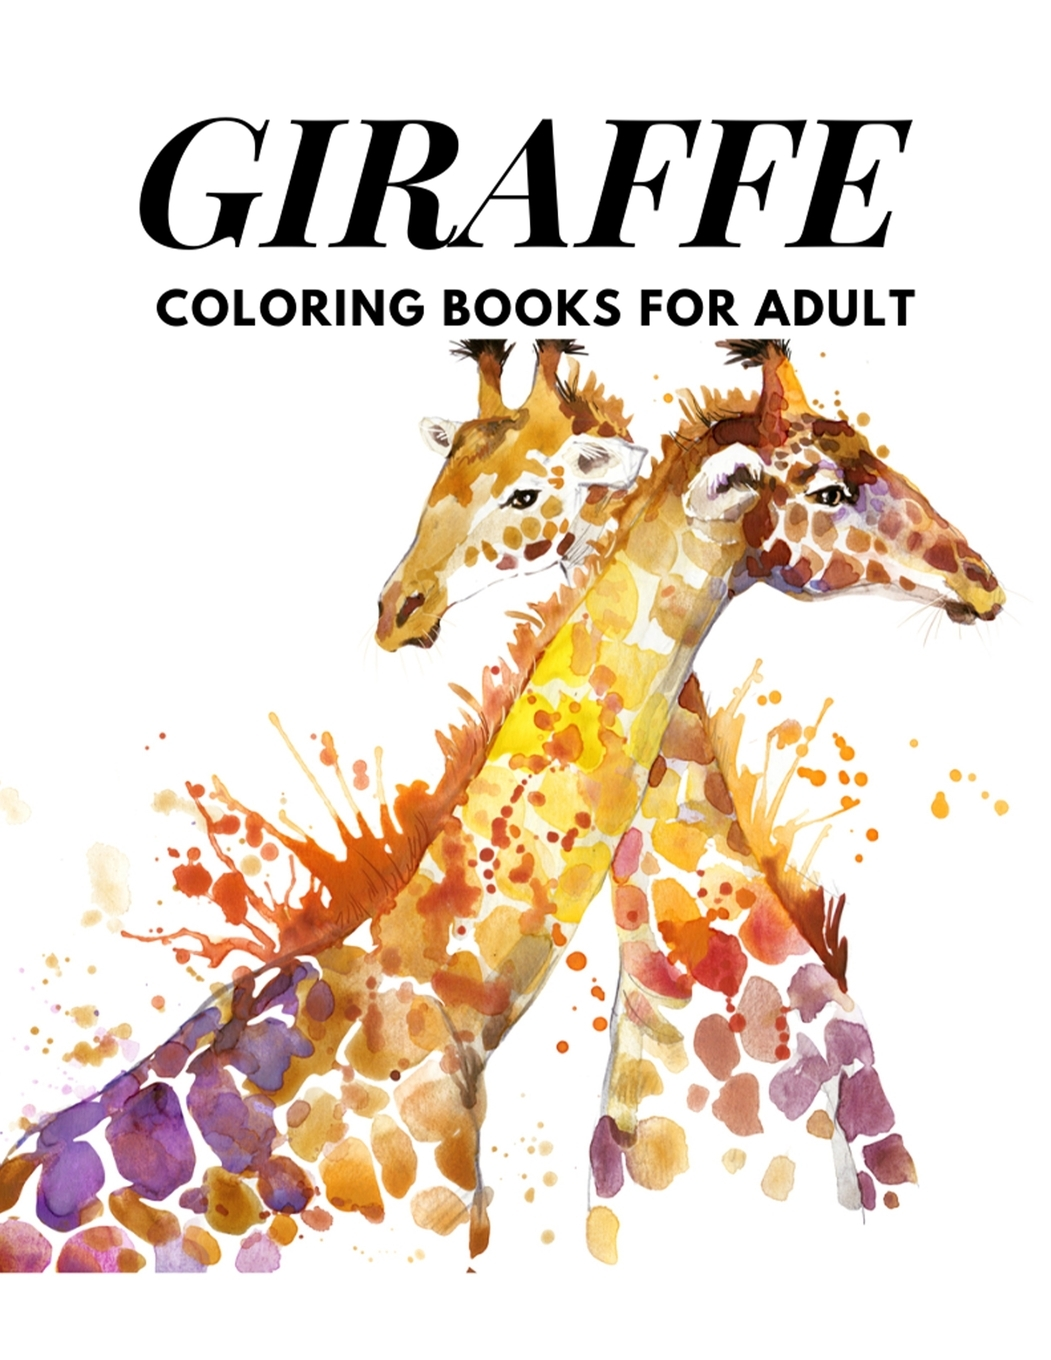 Giraffe Coloring Books For Adults: Relaxing Coloring Book For Grownups  Designs With Henna, Paisley And Mandala Style Patterns Animal Coloring Books  (Paperback) - Walmart.com - Walmart.com